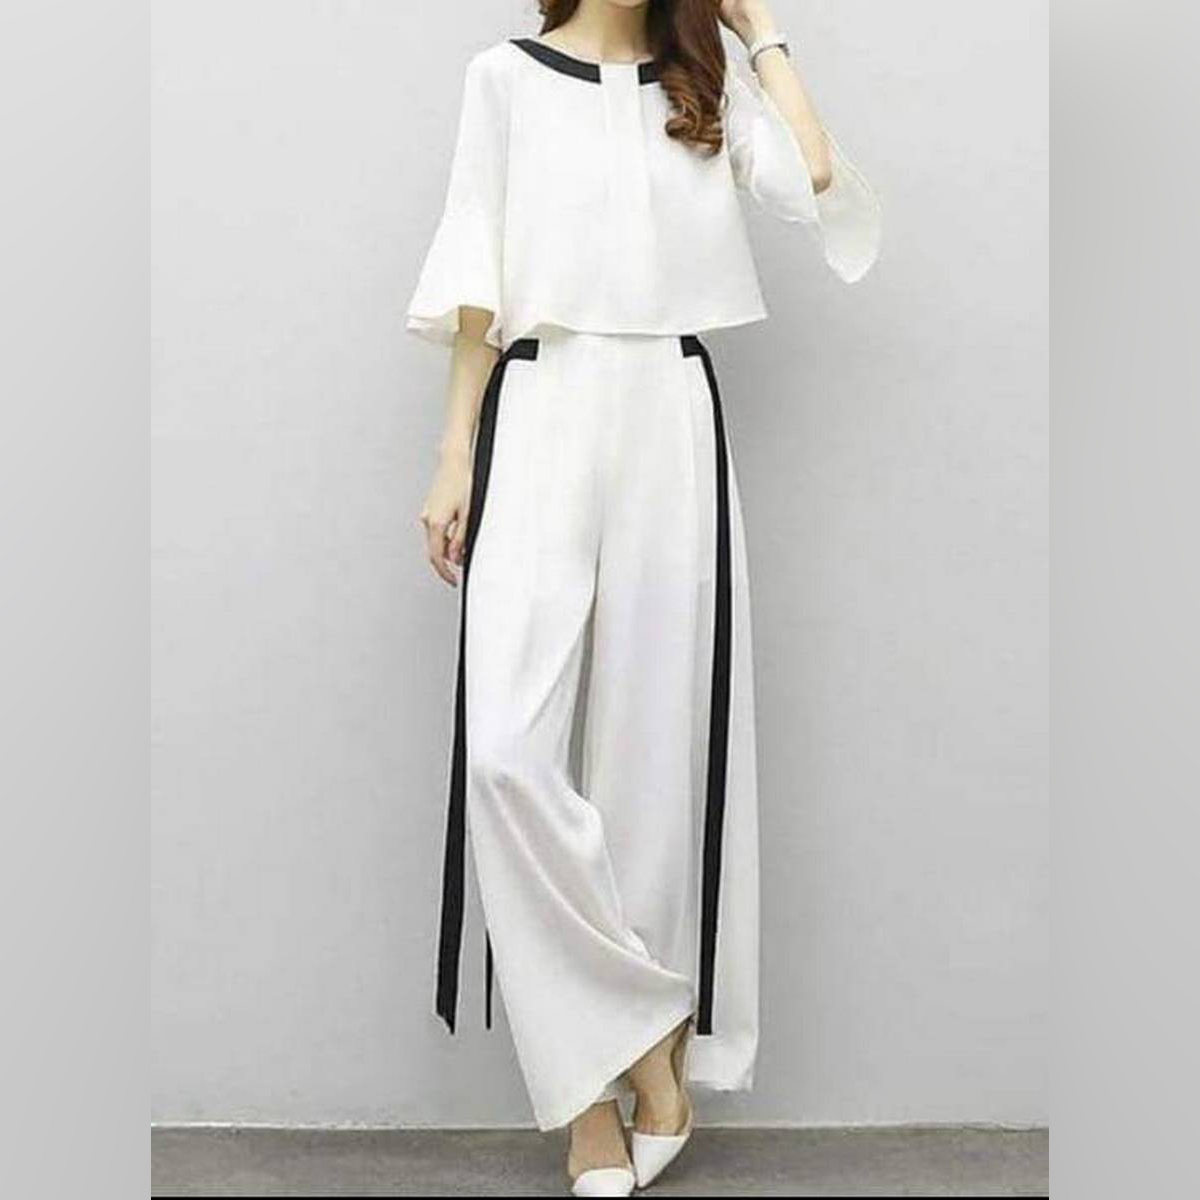 New Summer Fashionable Stylish White Jump Suit For Women